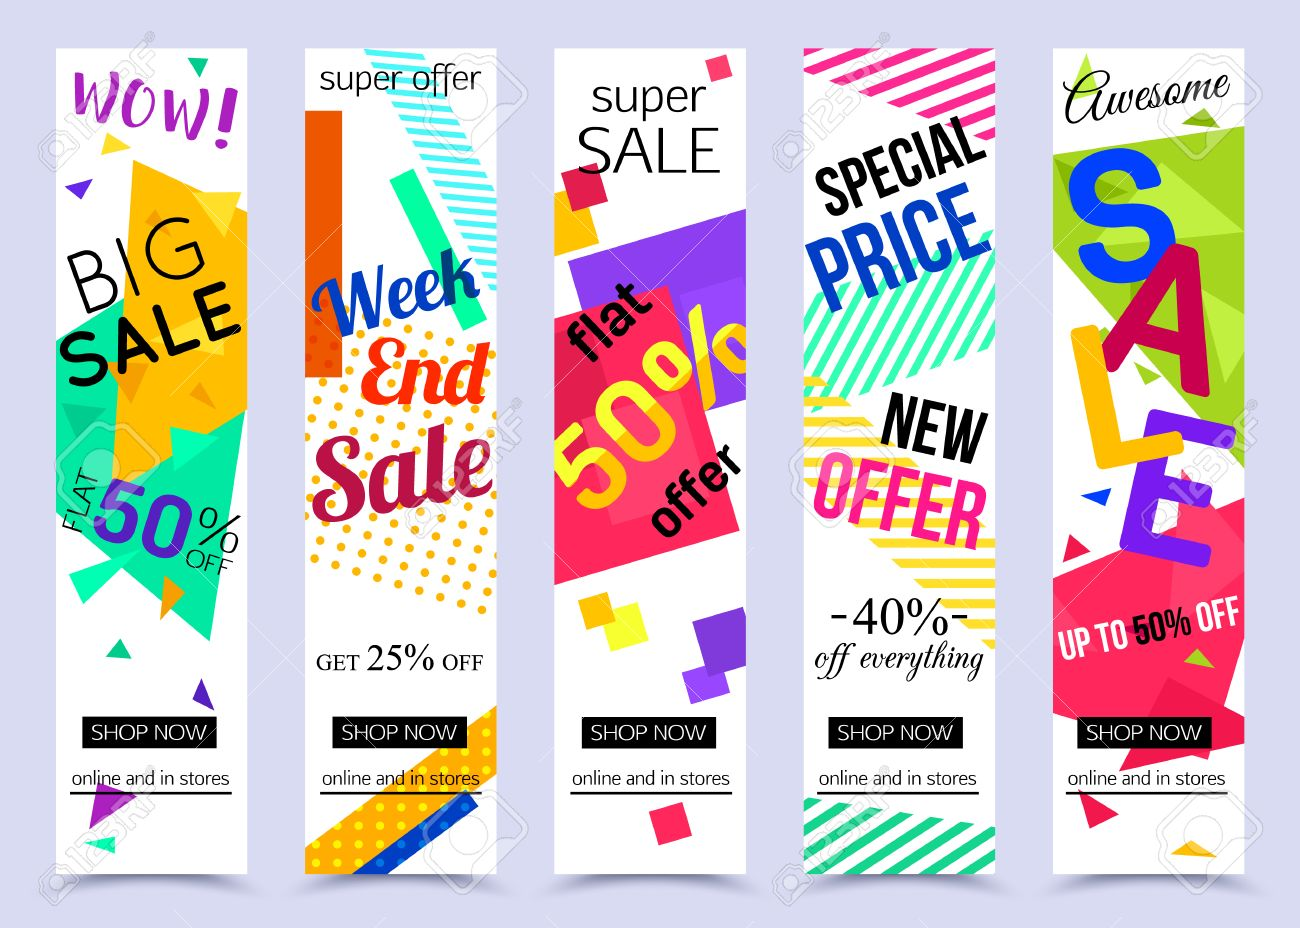 Collection Of Vertical Social Media Banners Vector Illustrations Royalty Free Cliparts Vectors And Stock Illustration Image 67180374